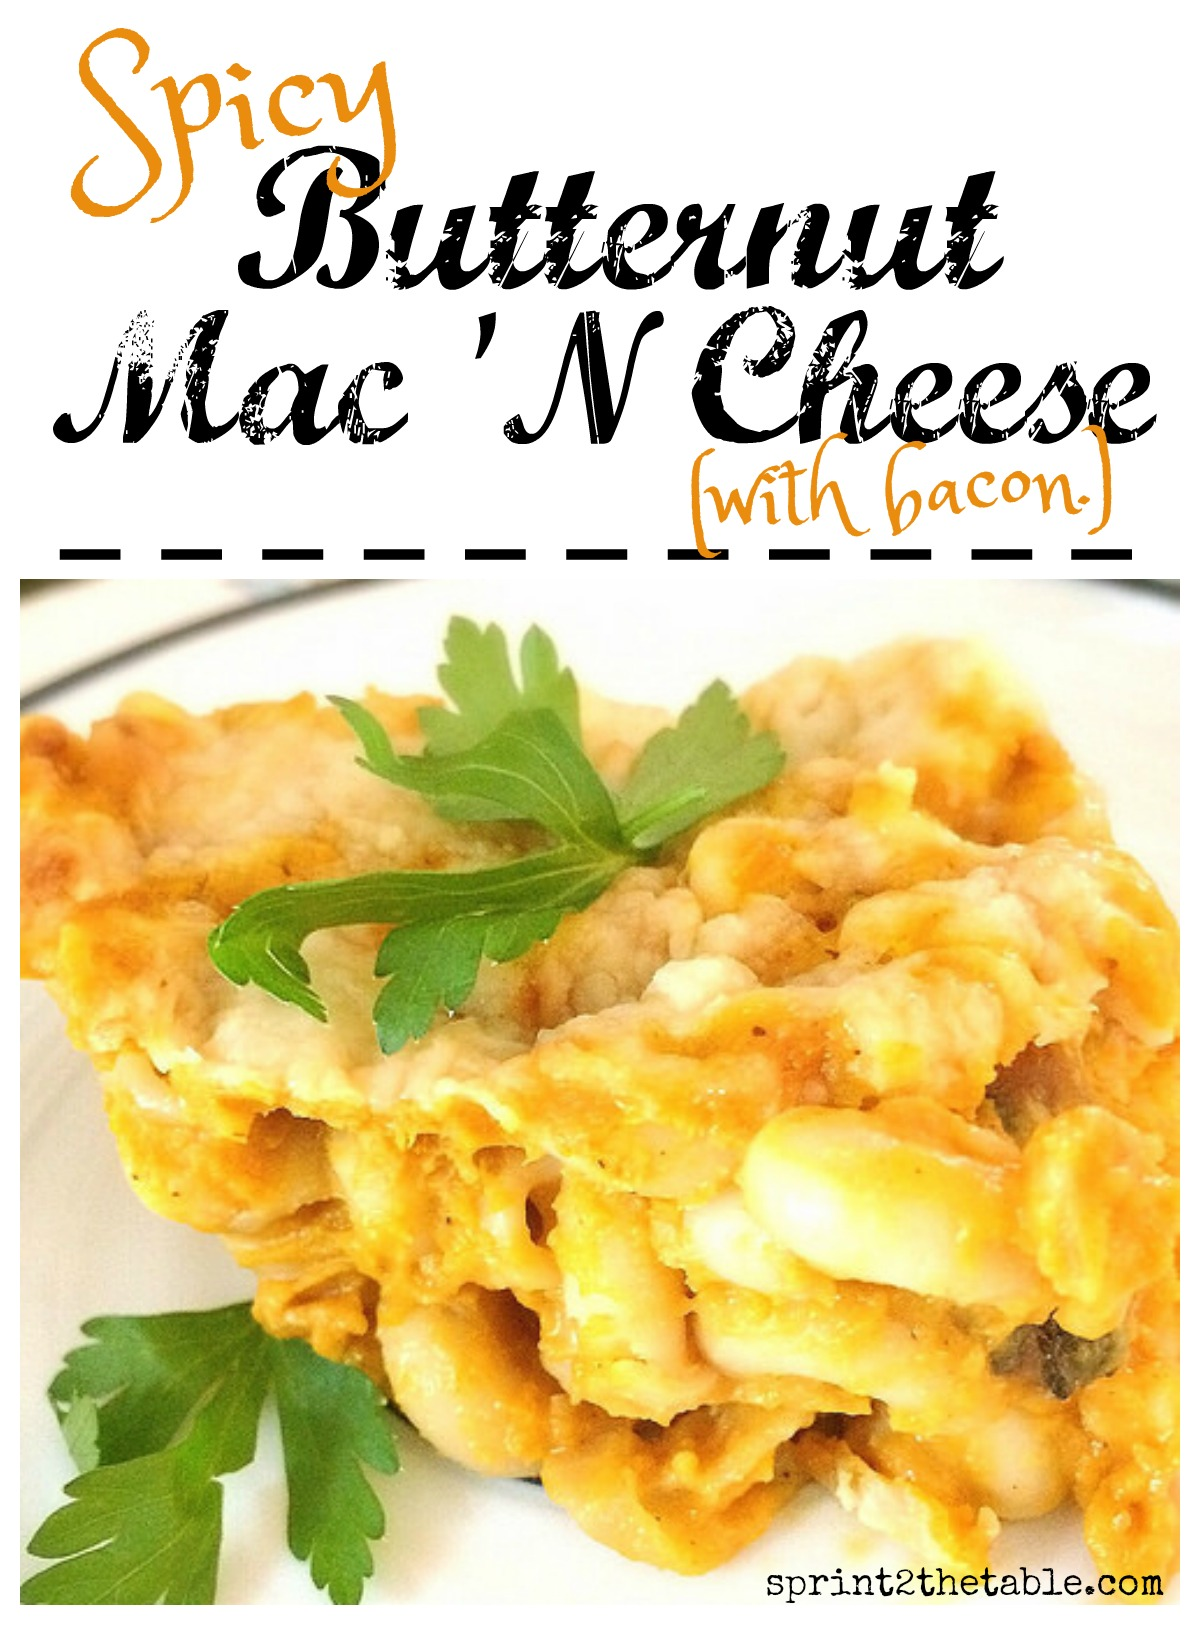 spicy-butternut-mac-n-cheese-with-bacon-recipe